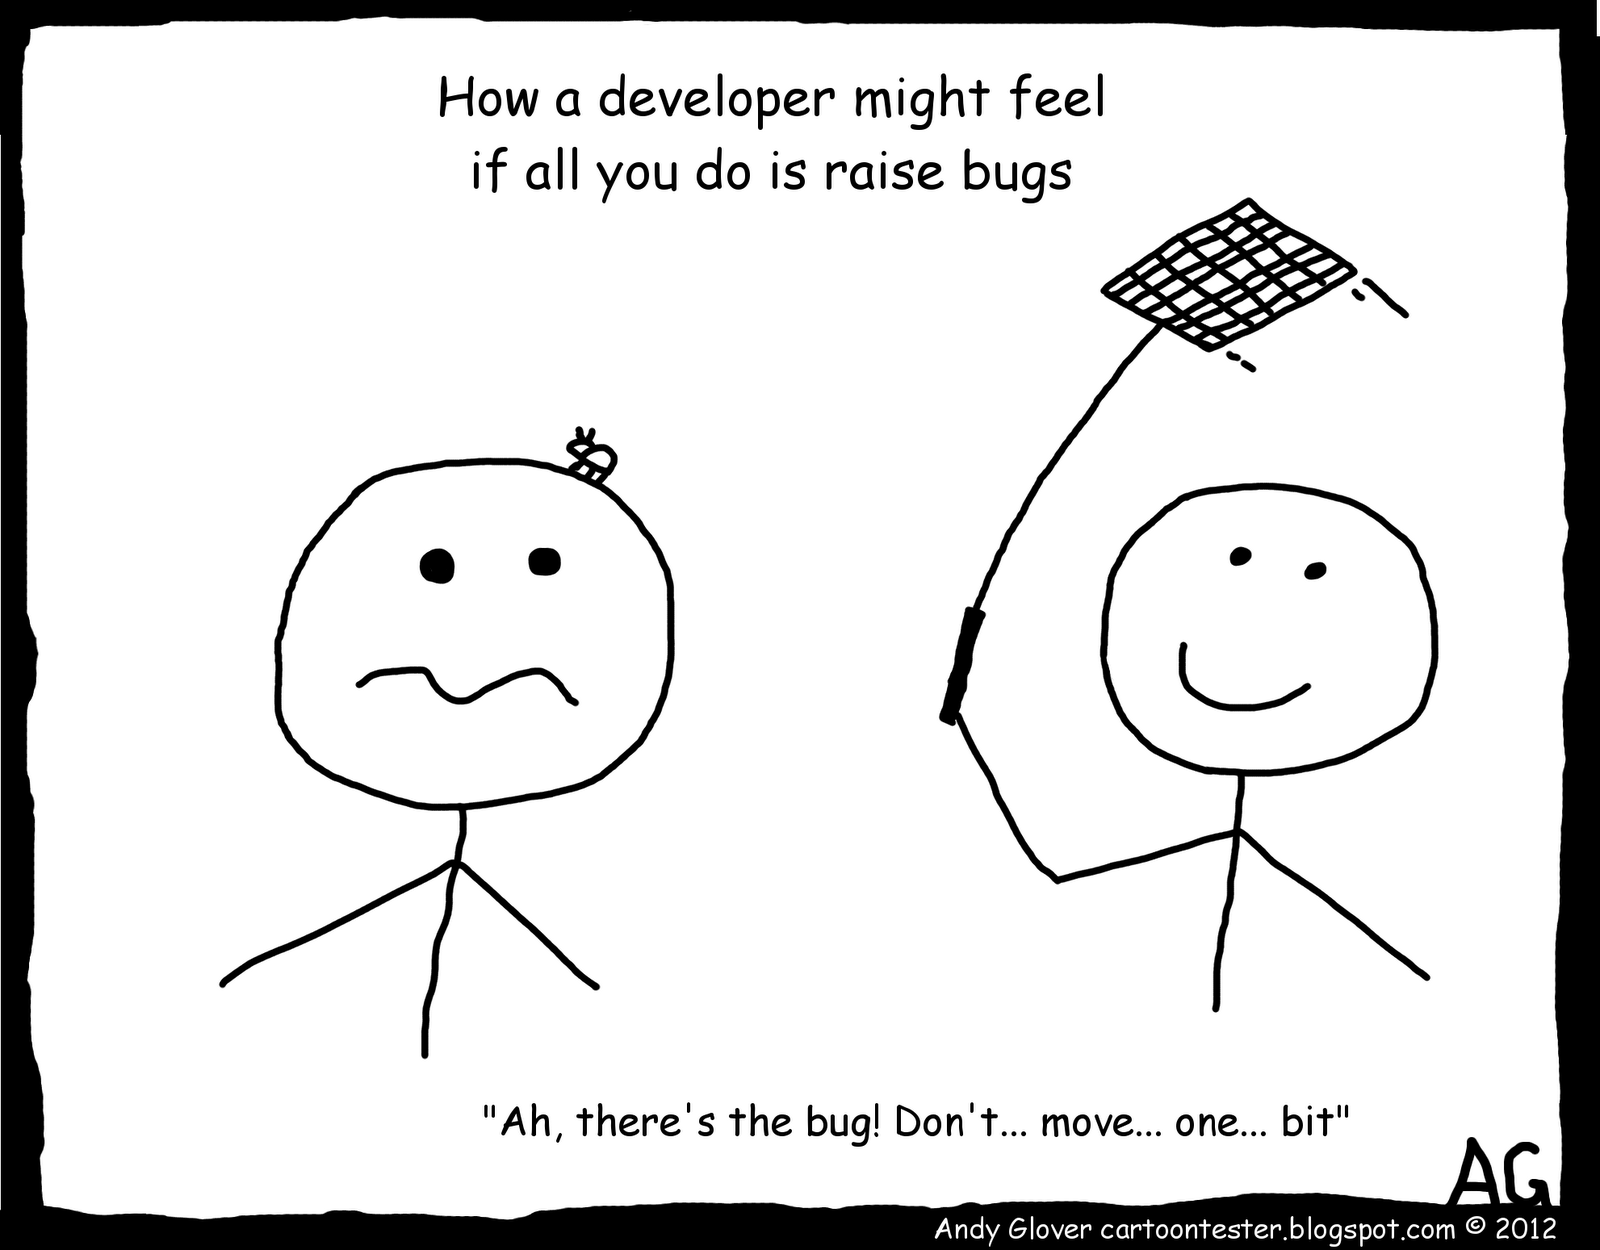 How A Developer Might Feel If All You Do Is Report Bugs